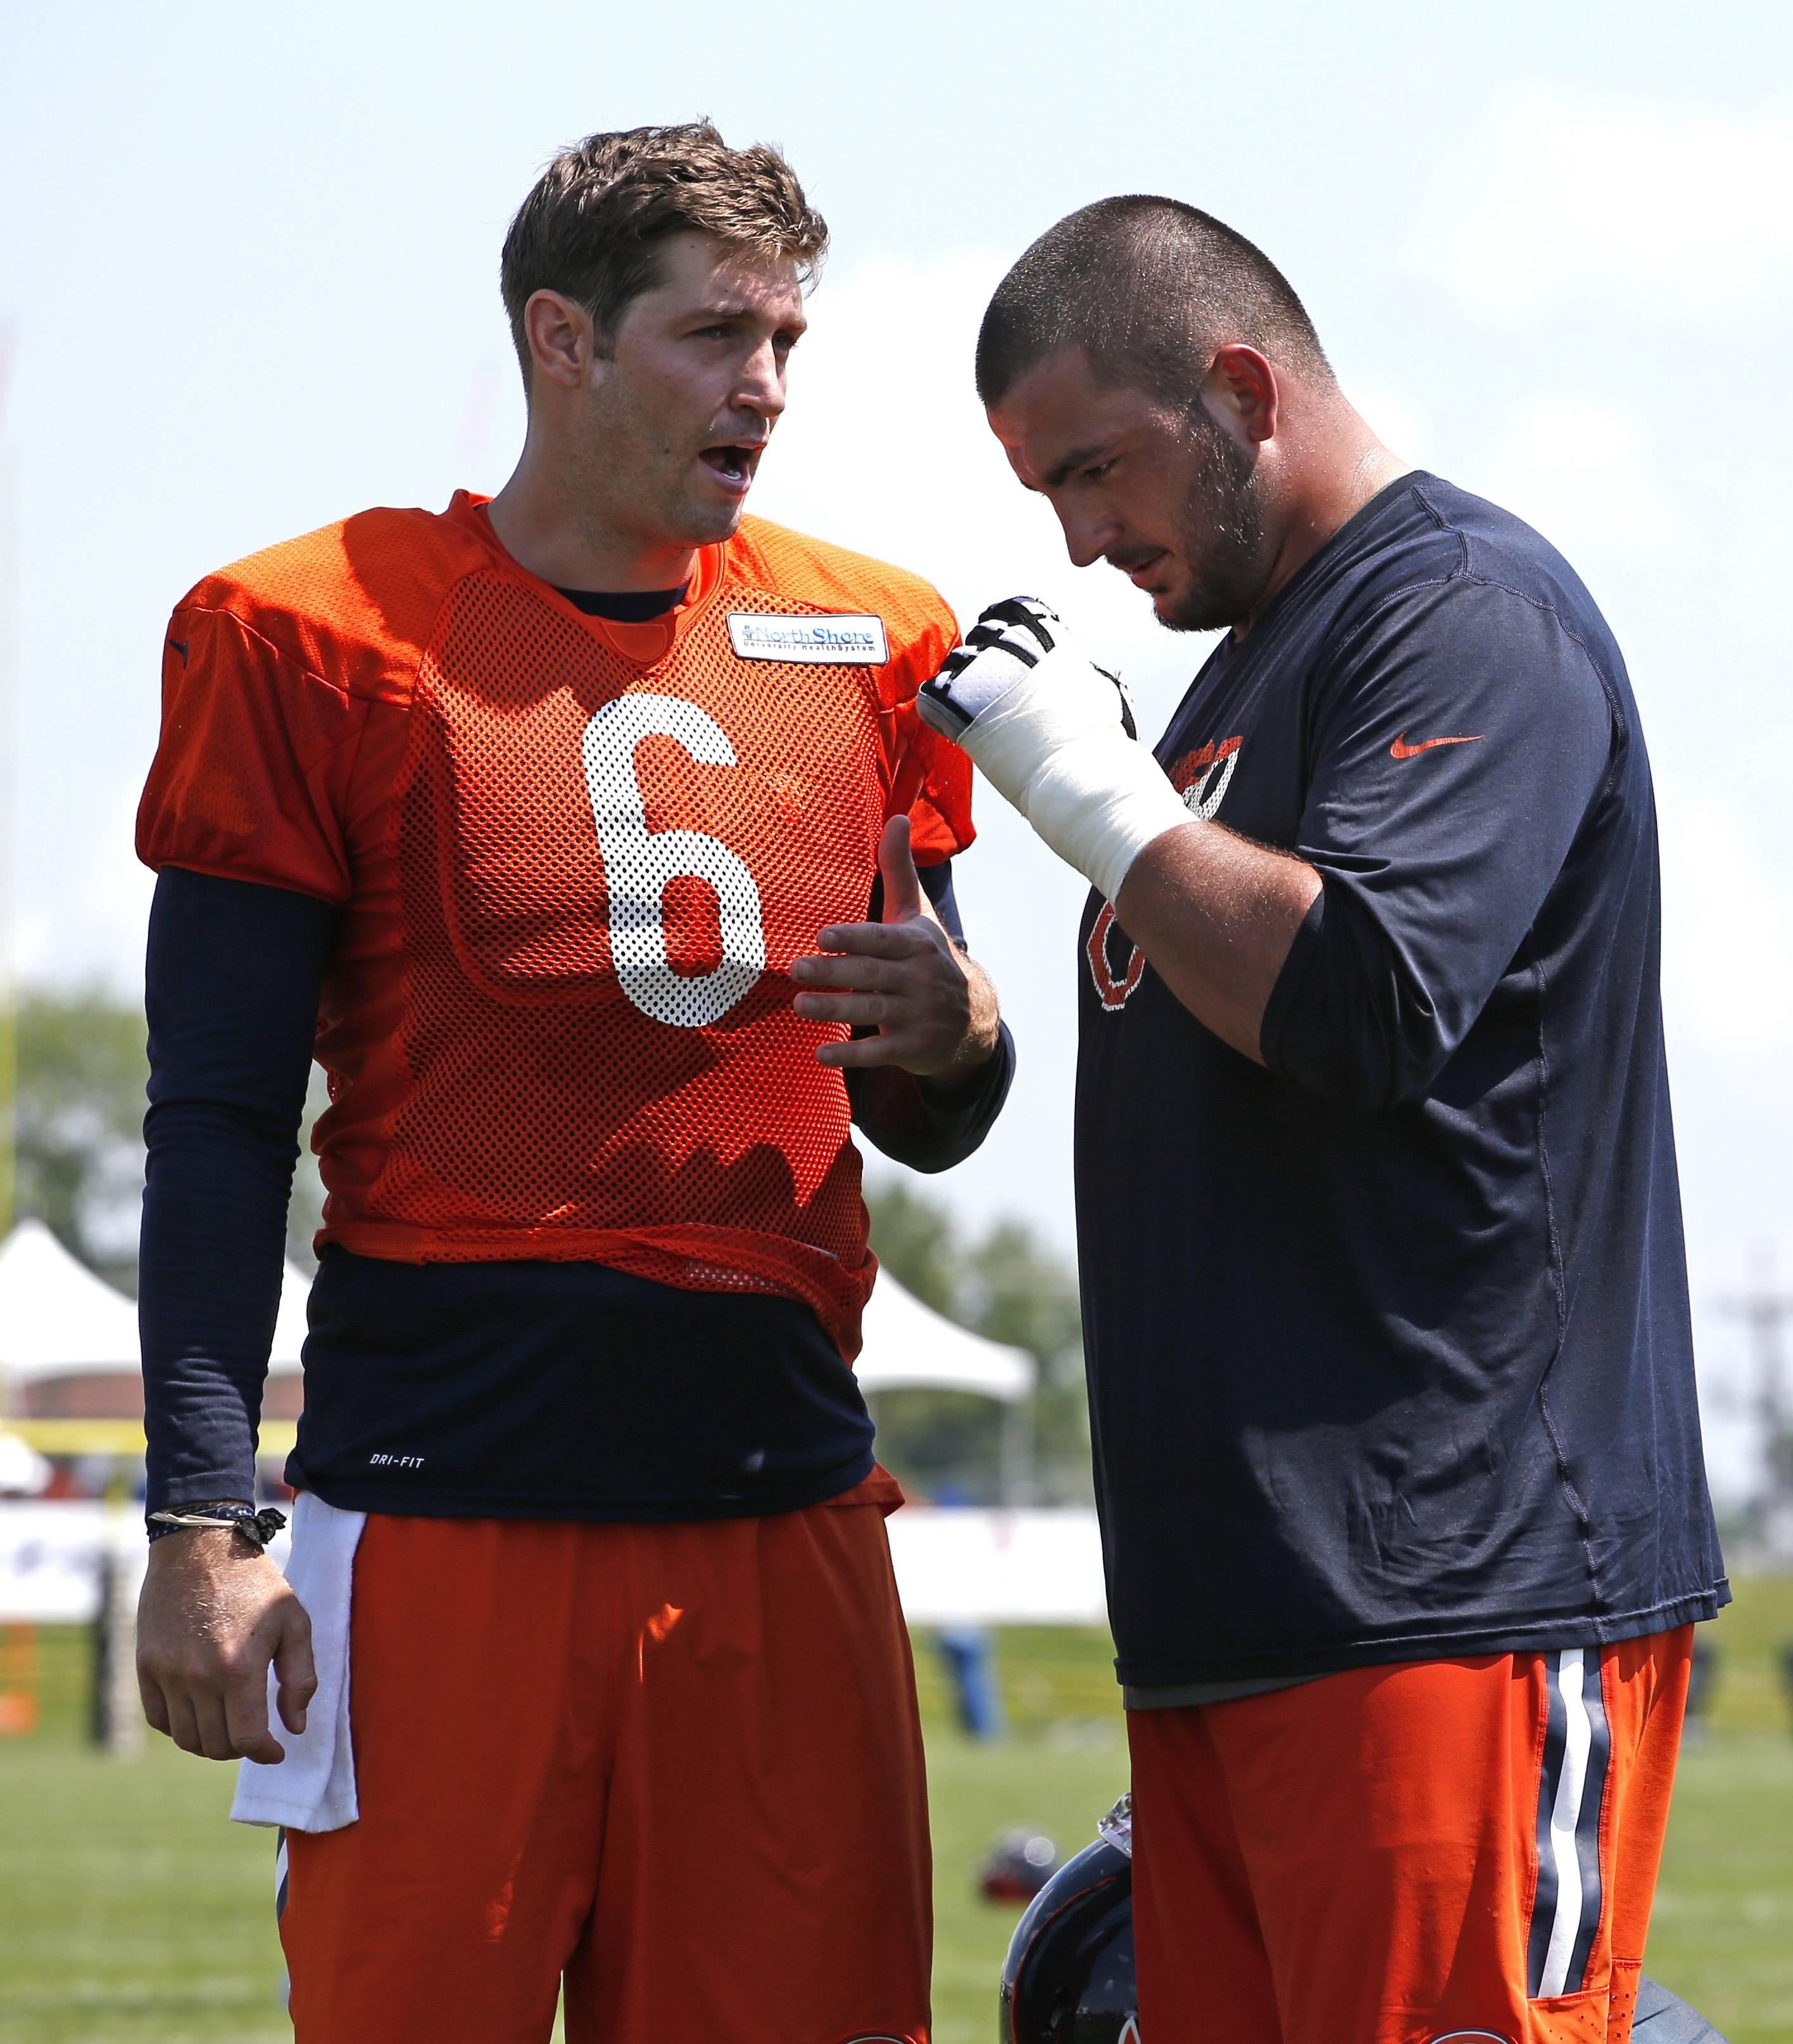 Bears quarterback Jay Cutler, left, talks with center Hroniss Grasu during practice at the NFL football teams training camp at Olivet Nazarene University, in Bourbonnais on Thursday. Thursday's strained calf that kept three-time Pro Bowl offensive lineman Kyle Long out of Friday's practice and in a protective walking boot sheds more of a spotlight on young offensive linemen like center Hroniss Grasu.